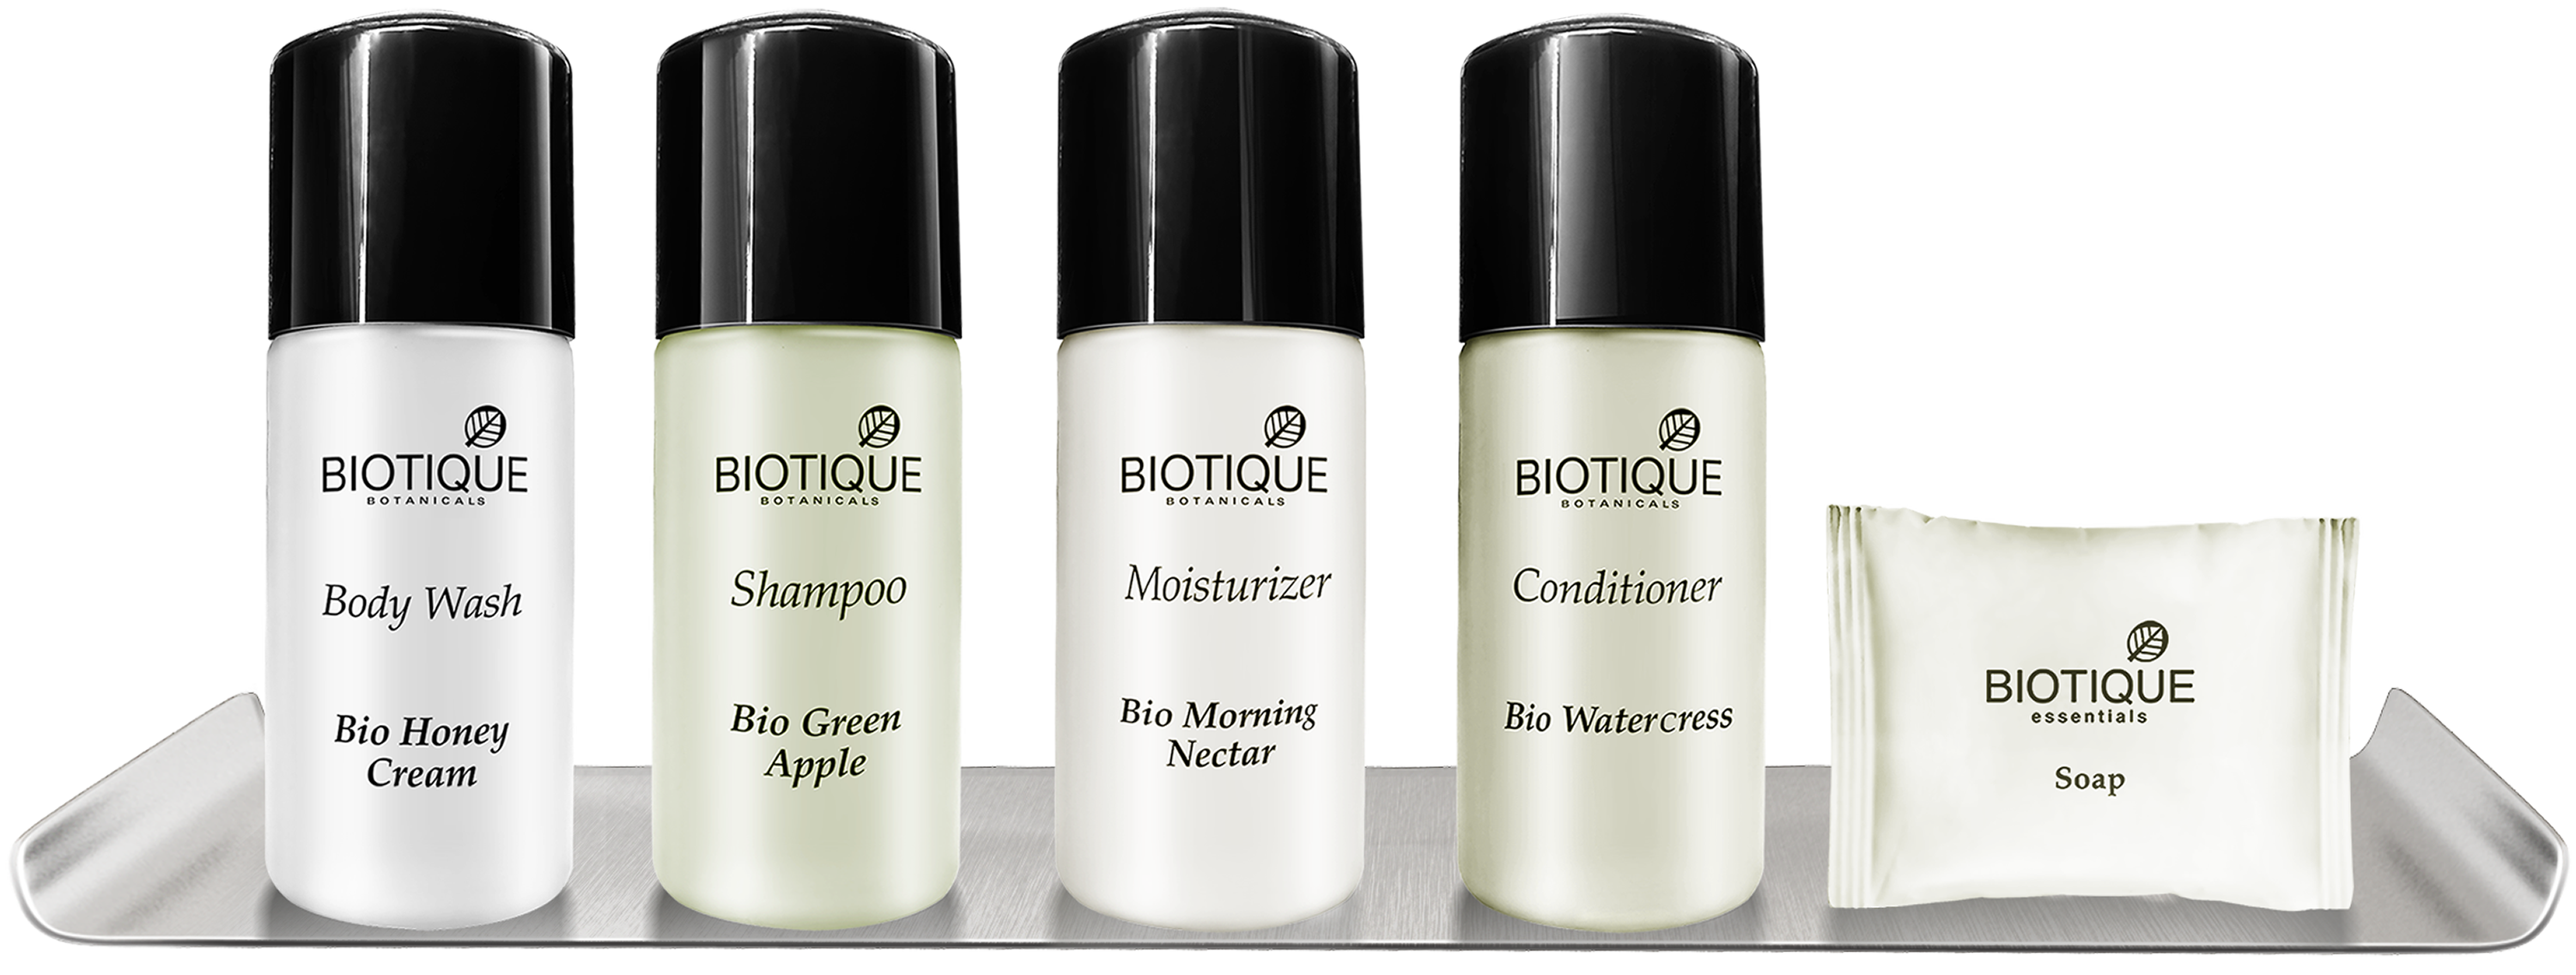 Hotel amenities by Biotique include haircare, skincare and body care ...